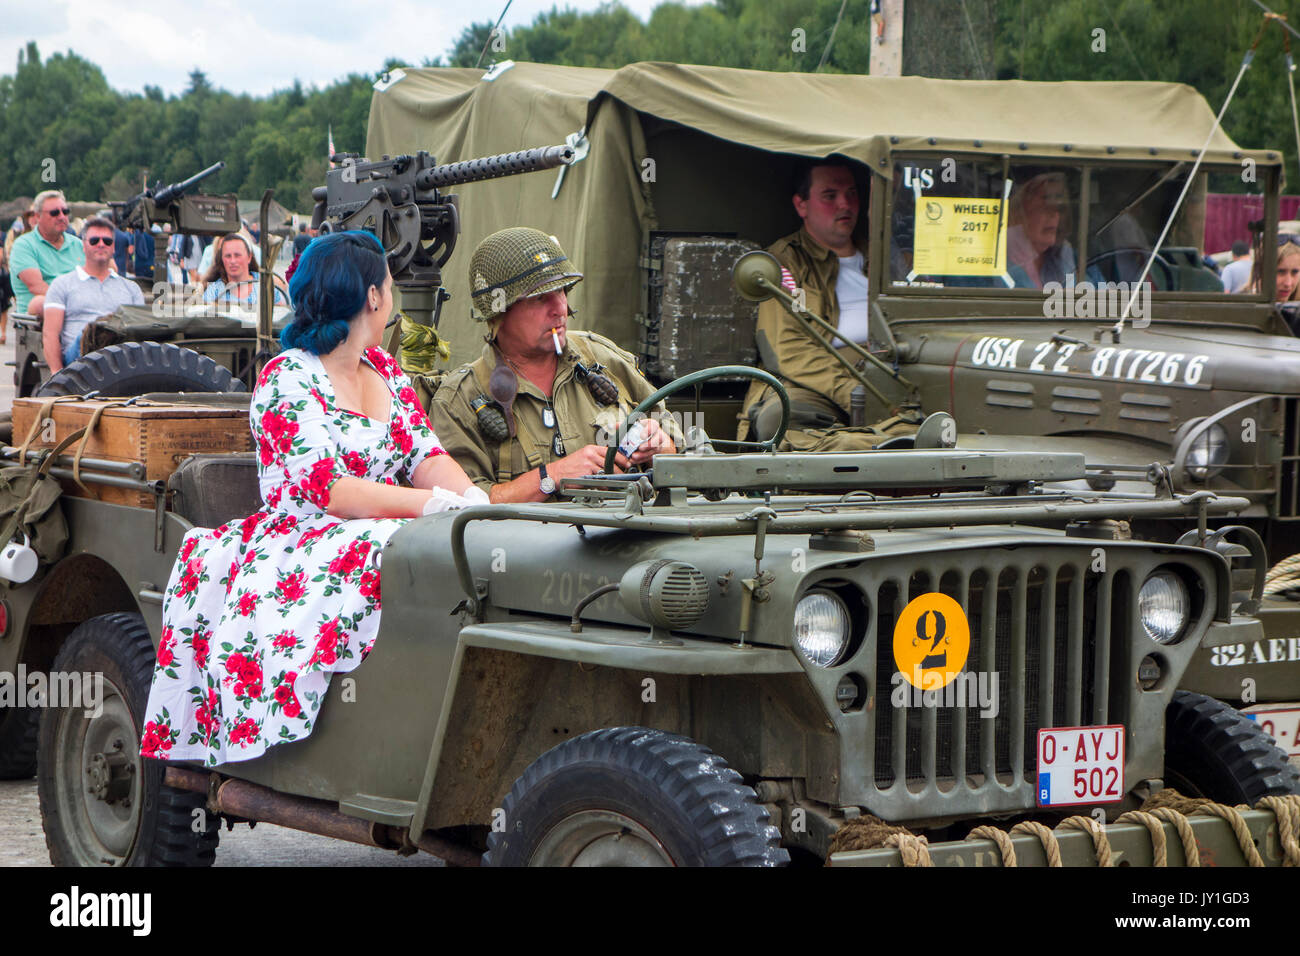 Reenactors dressed as WW2 US soldier and woman in 1940s dress posing in WWII military Willys MB jeep during World War Two militaria fair - Stock Image